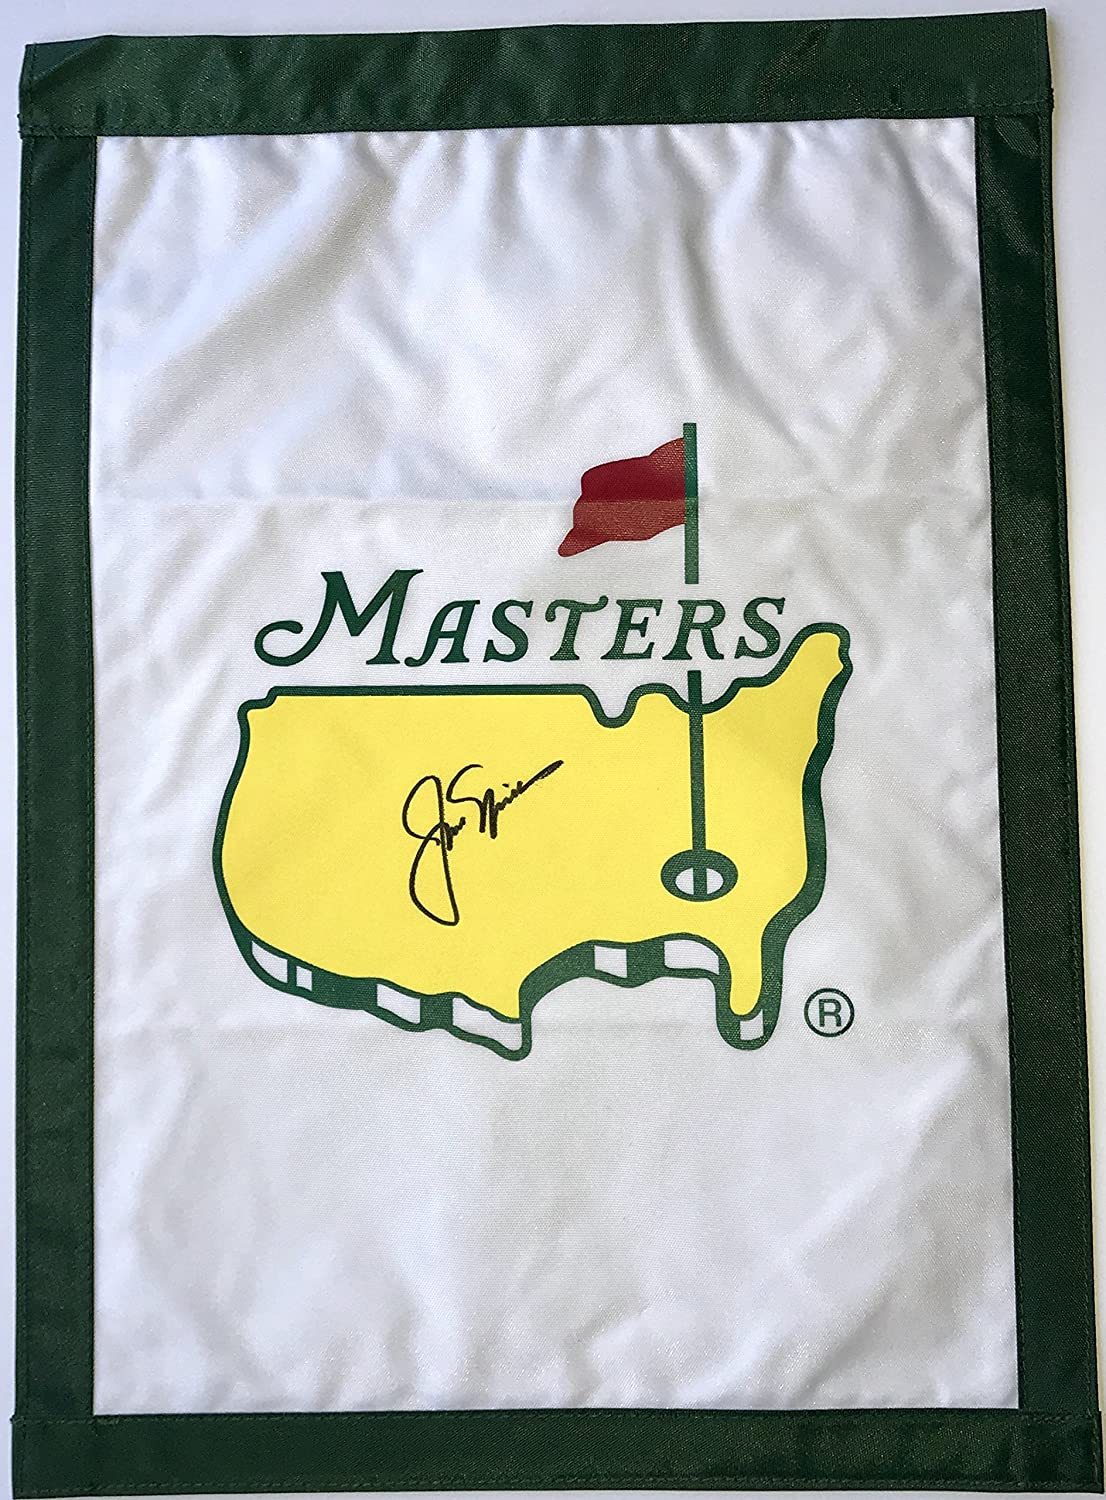 3f9ca56597a Jack Nicklaus signed Masters golf flag with psa dna loa augusta national at  Amazon s Sports Collectibles Store